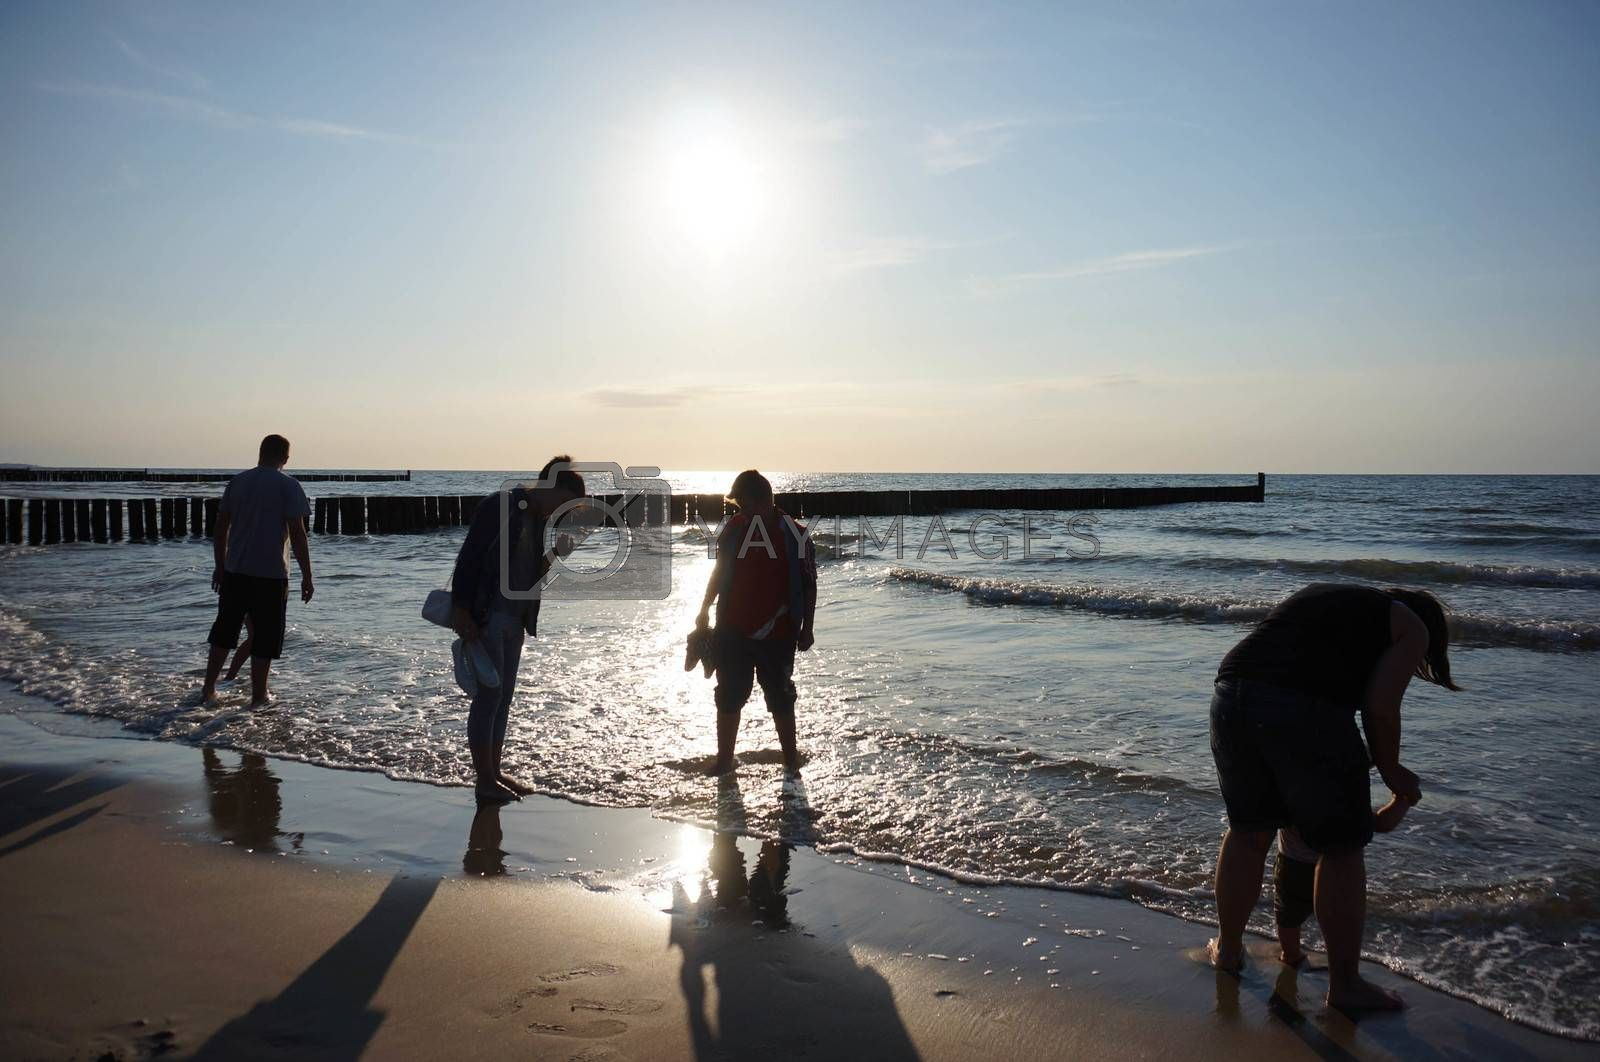 SIANOZETY, POLAND - JULY 18, 2015: Peope standing by the water at a beach in the evening